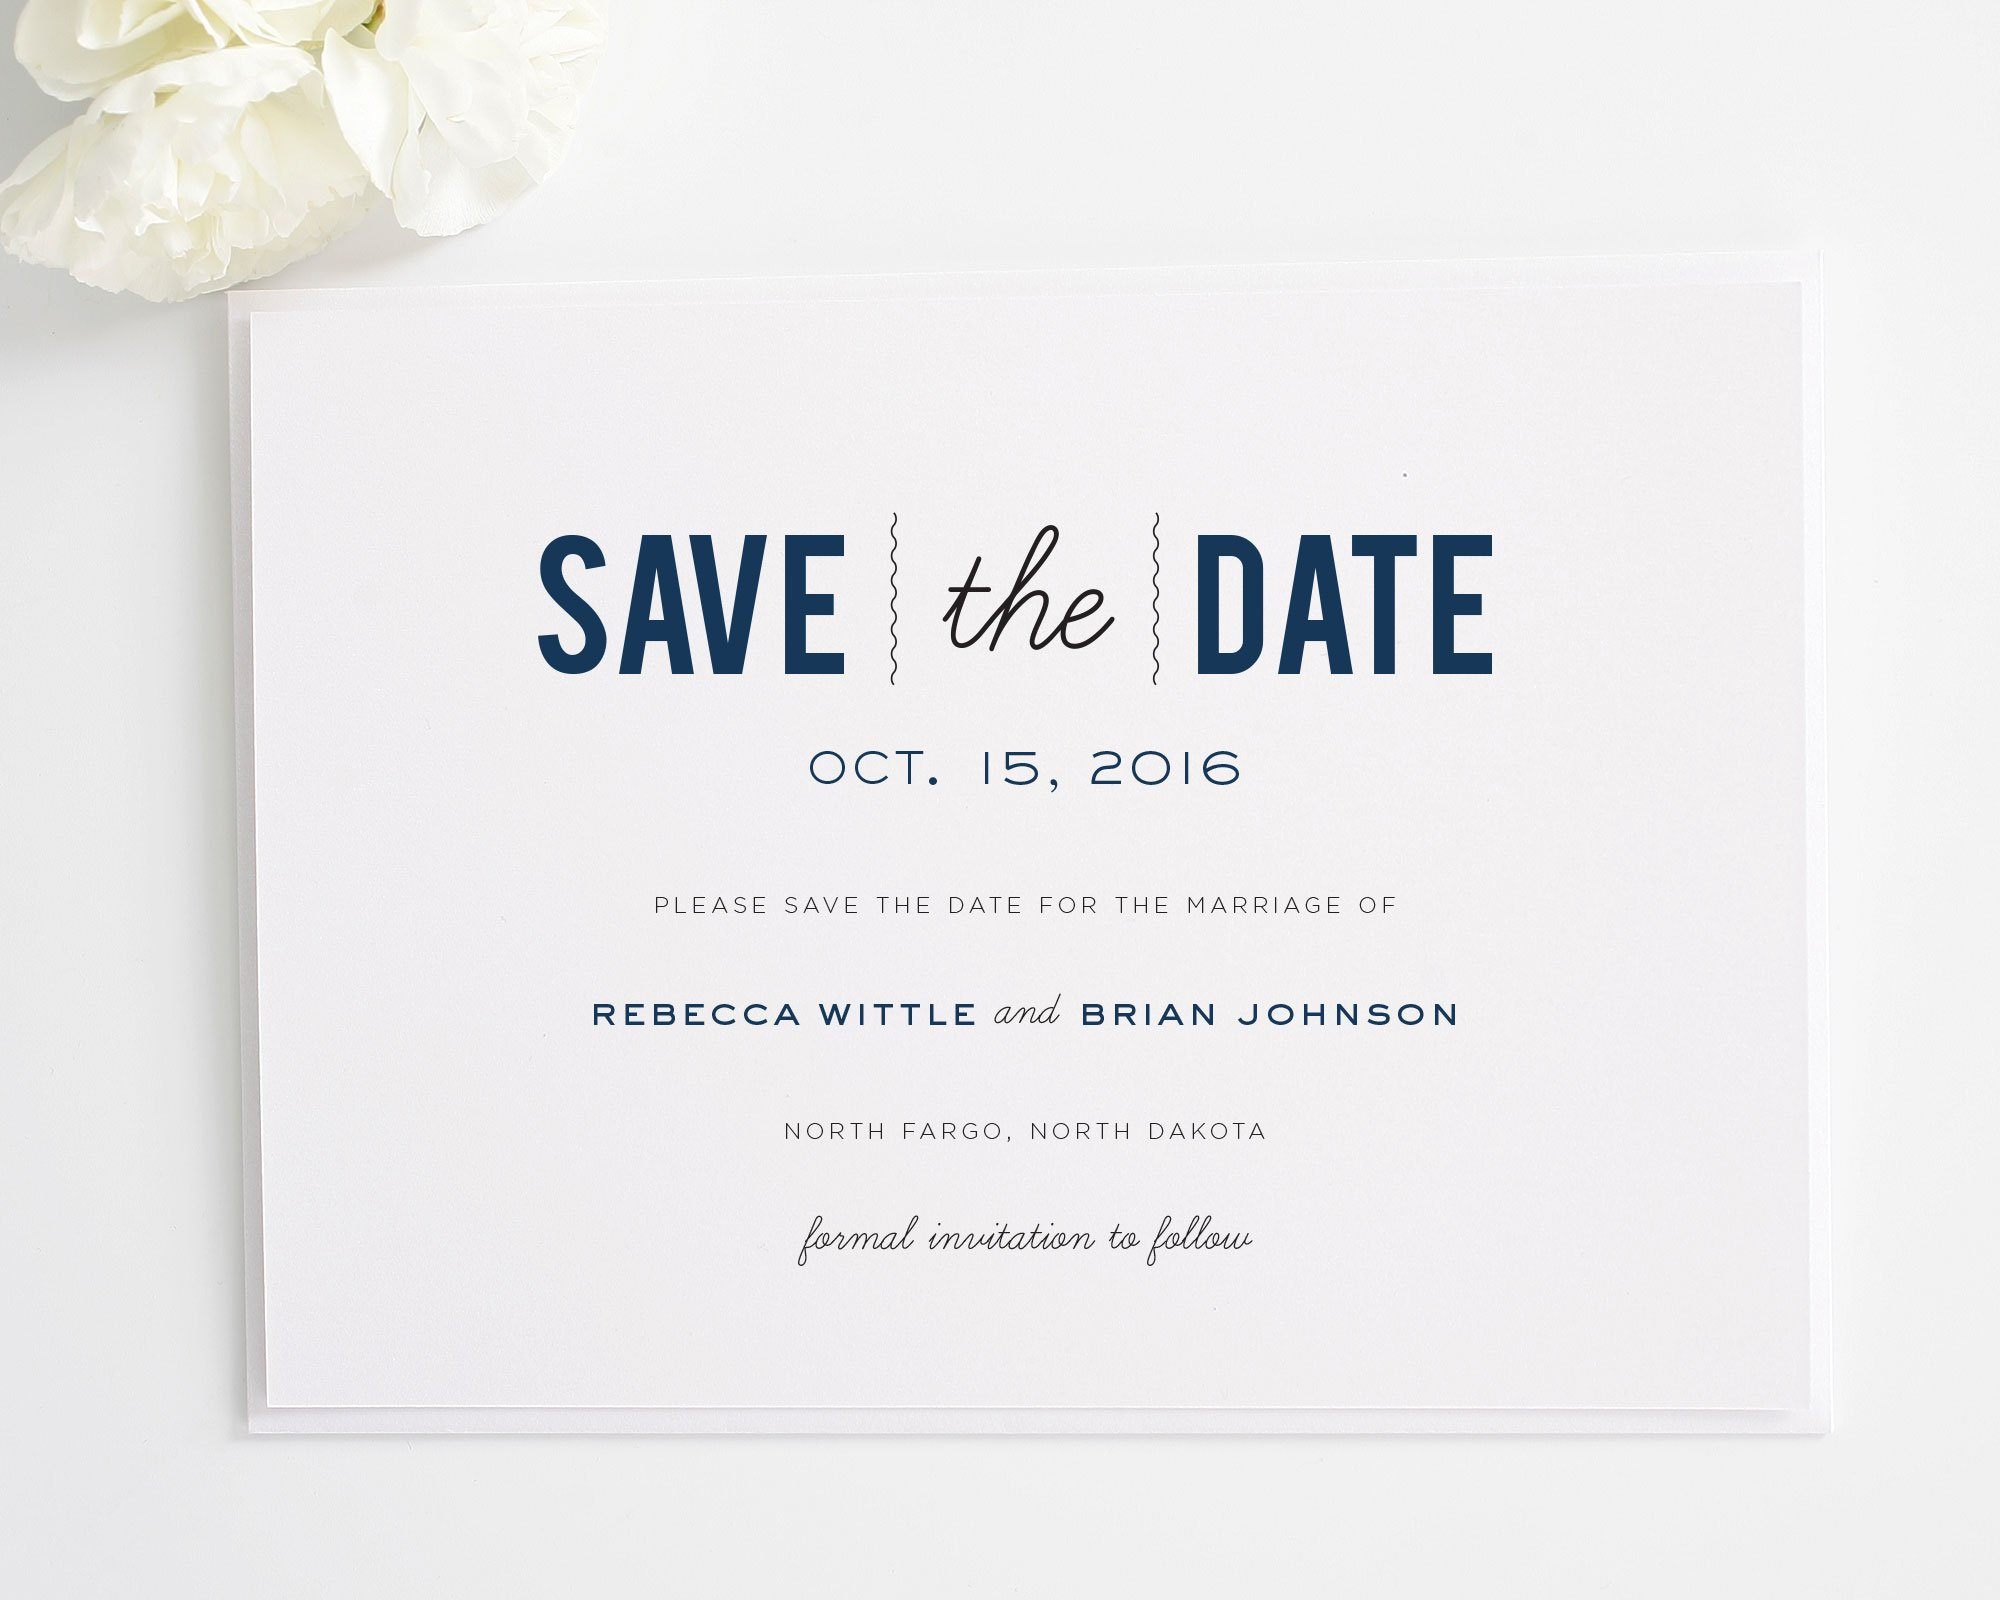 Date Monogram Save the Date Cards - Save the Date Cards by Shine